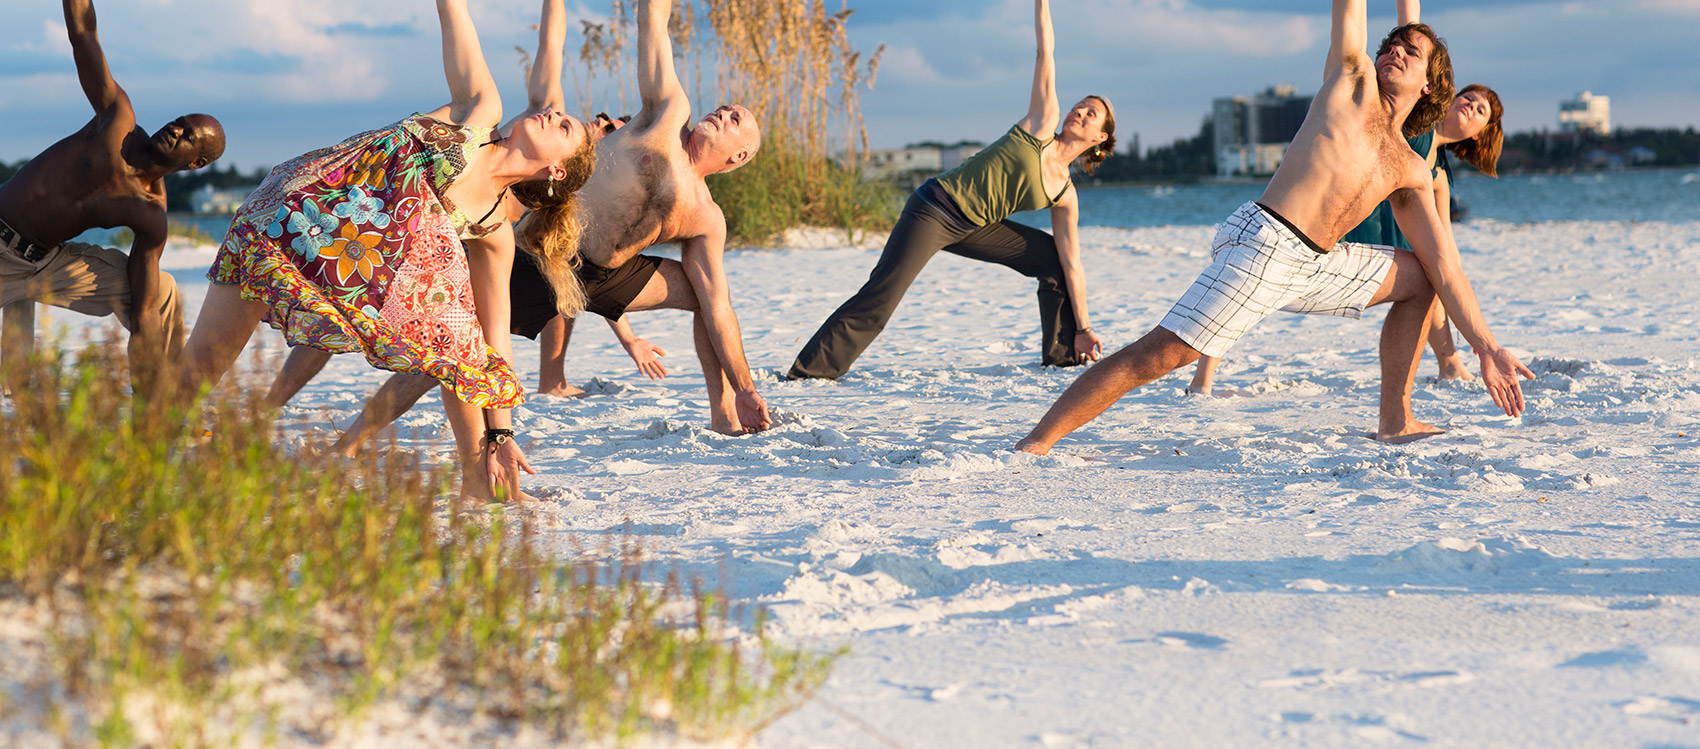 A diverse crowd of people performing yoga on the beach